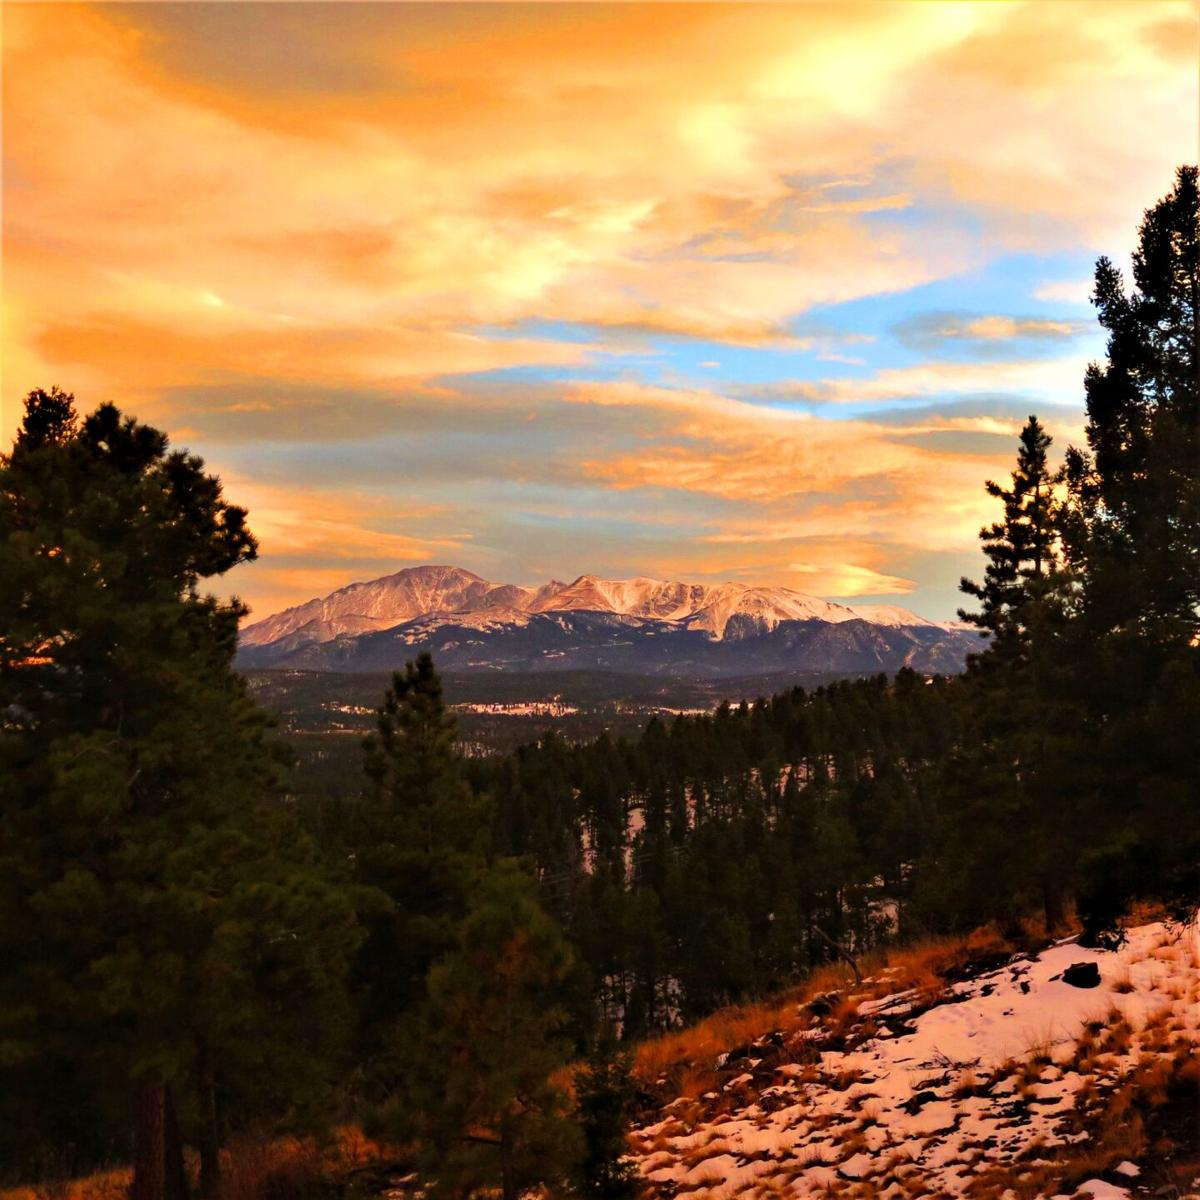 'Gorgeous' sunset in the Pikes Peak region